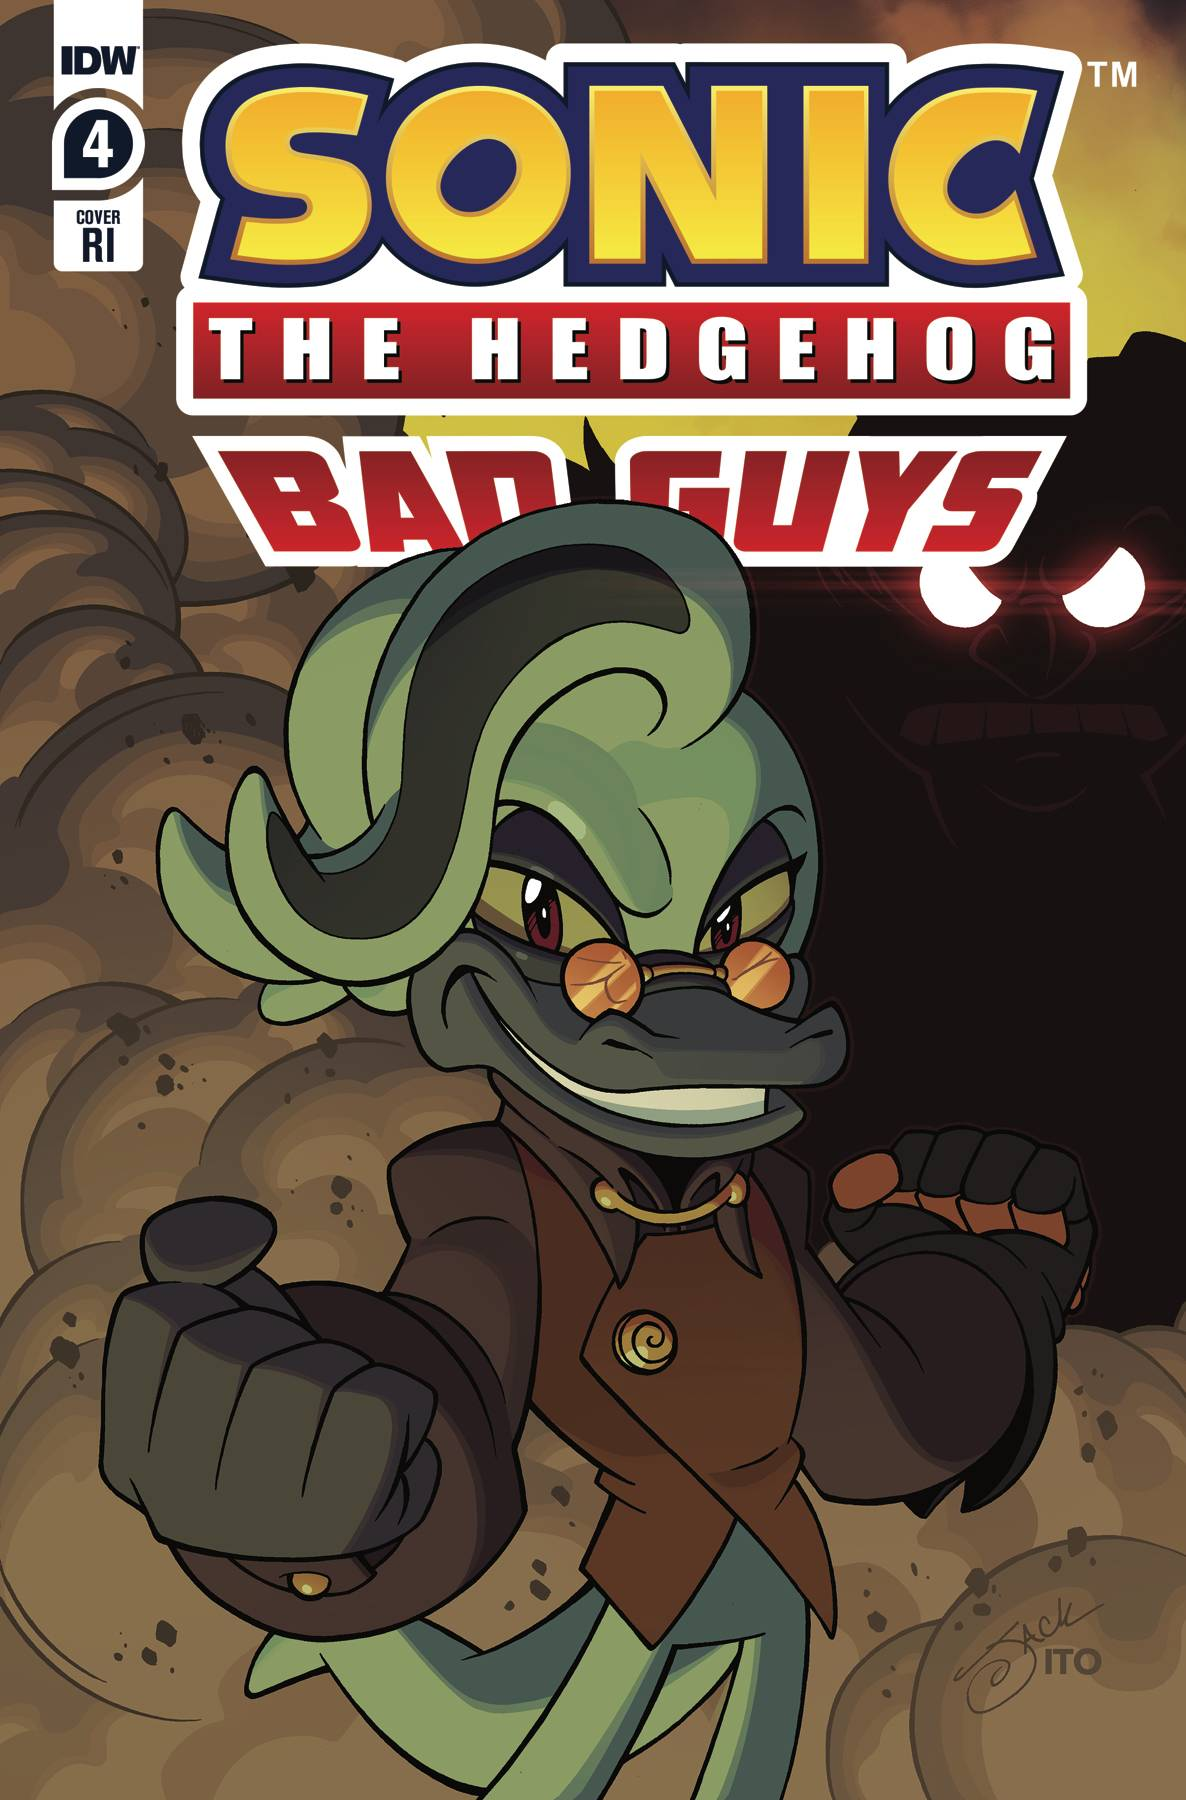 SONIC THE HEDGEHOG BAD GUYS #4 (OF 4) CVR A HAMMERSTROM